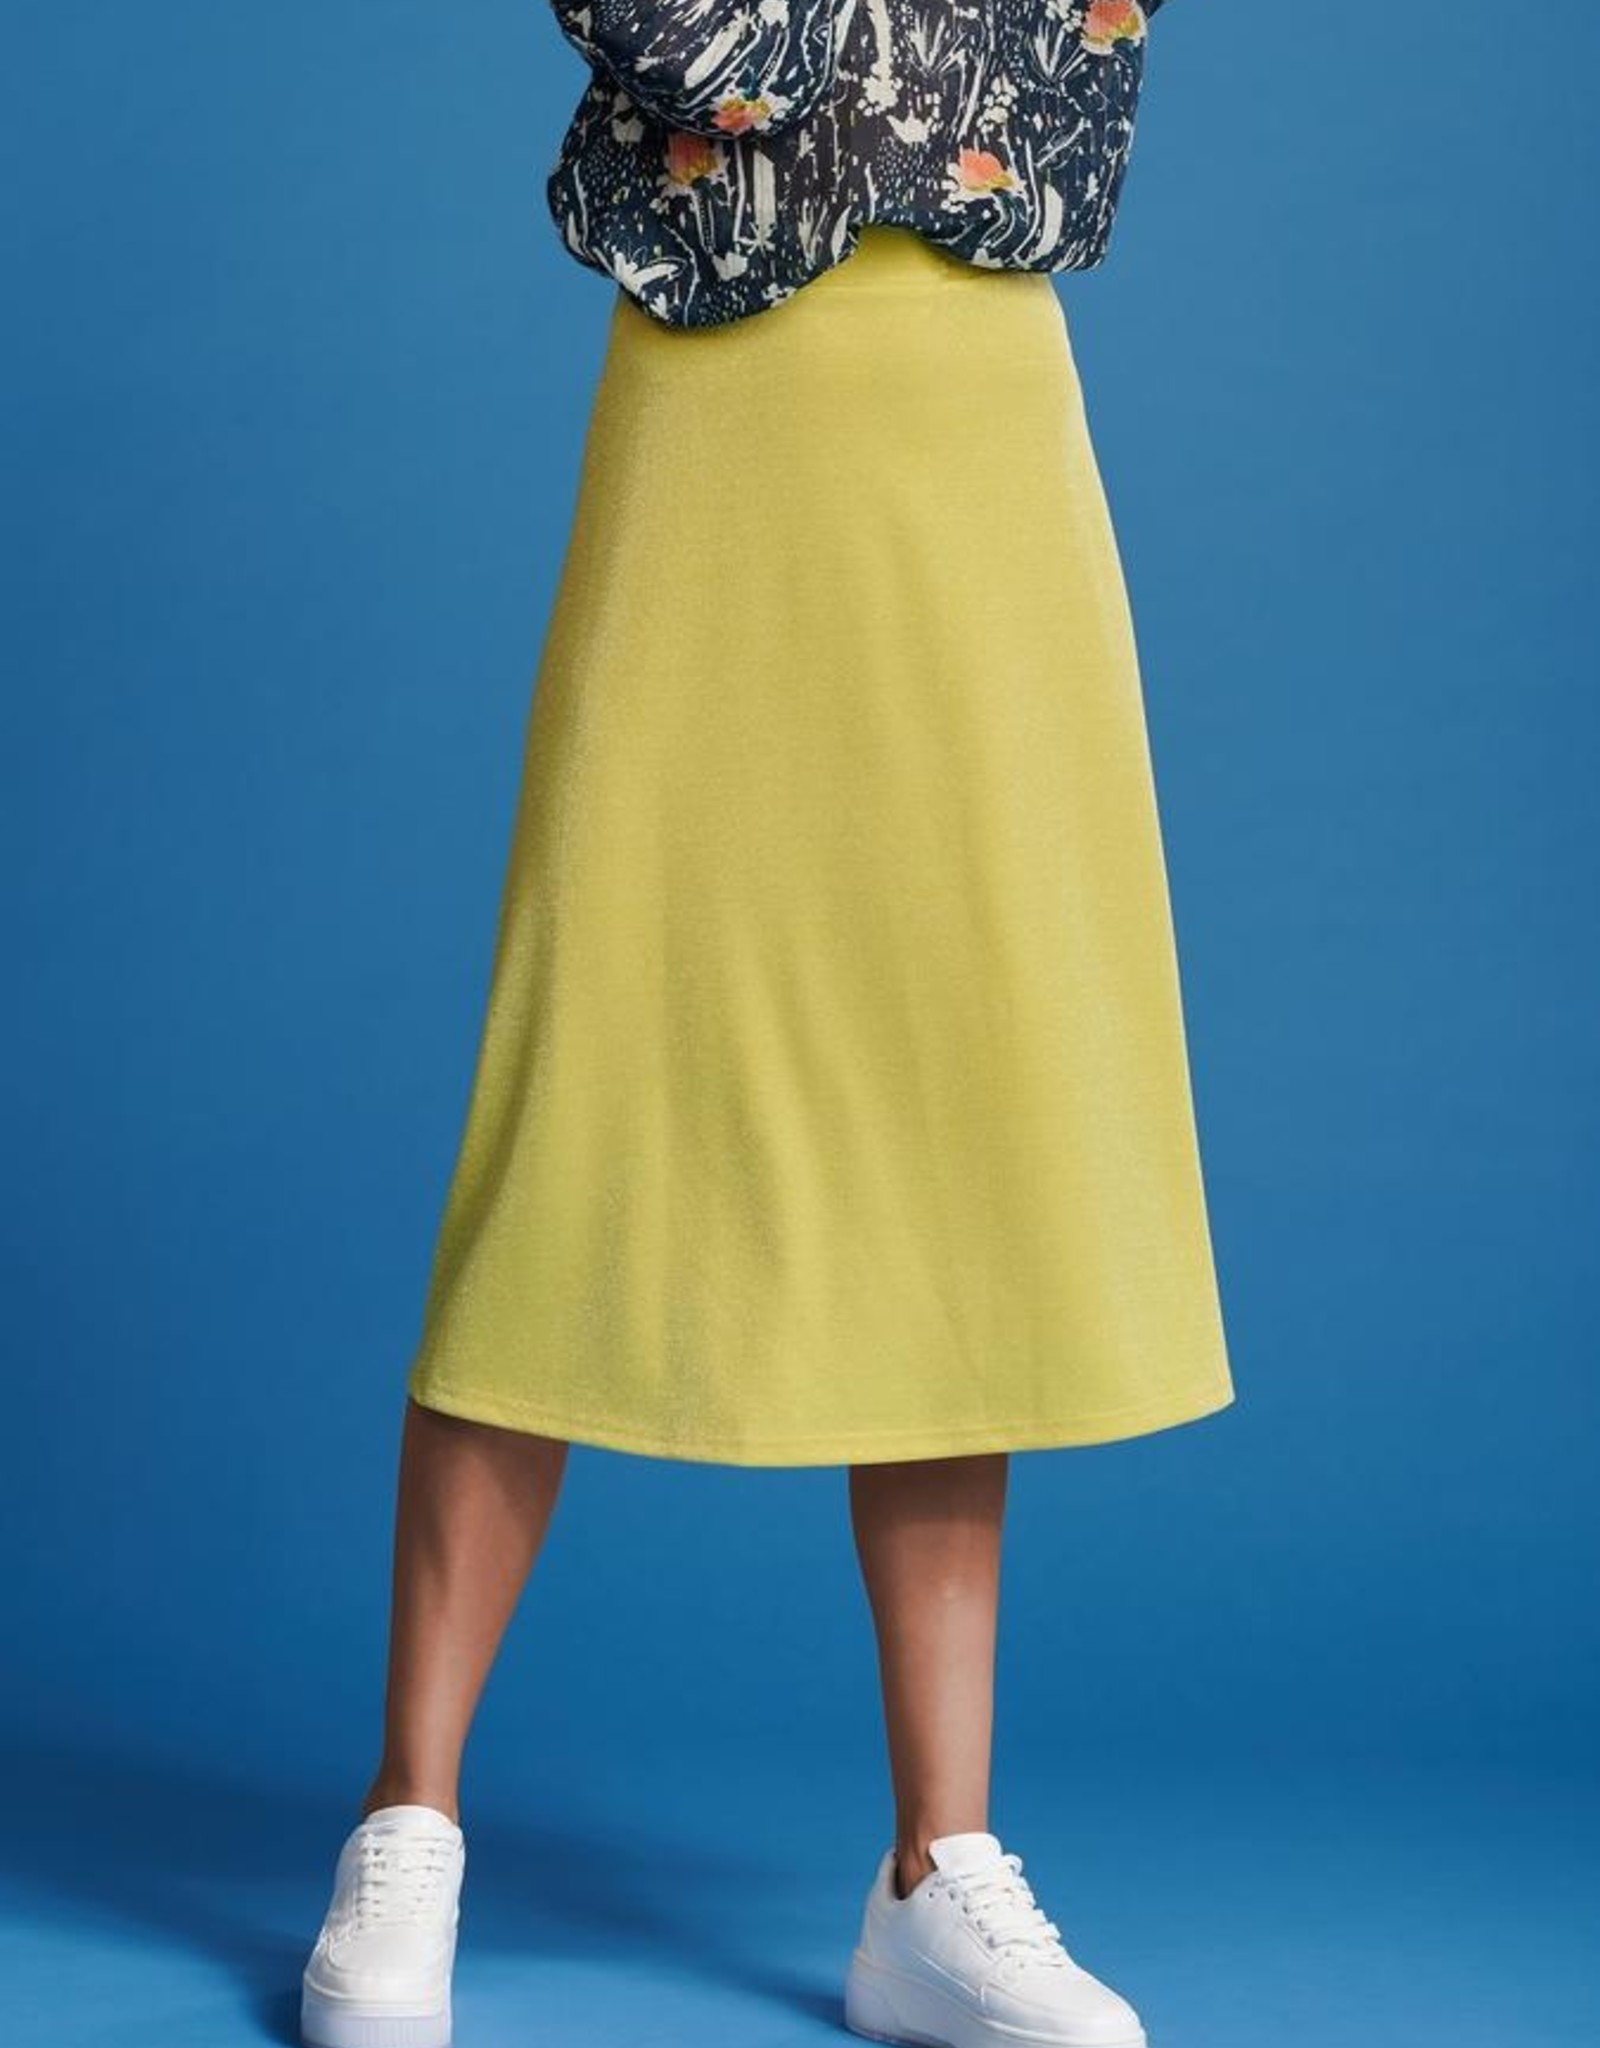 Pom Amsterdam SKIRT ­ Lemon Shine